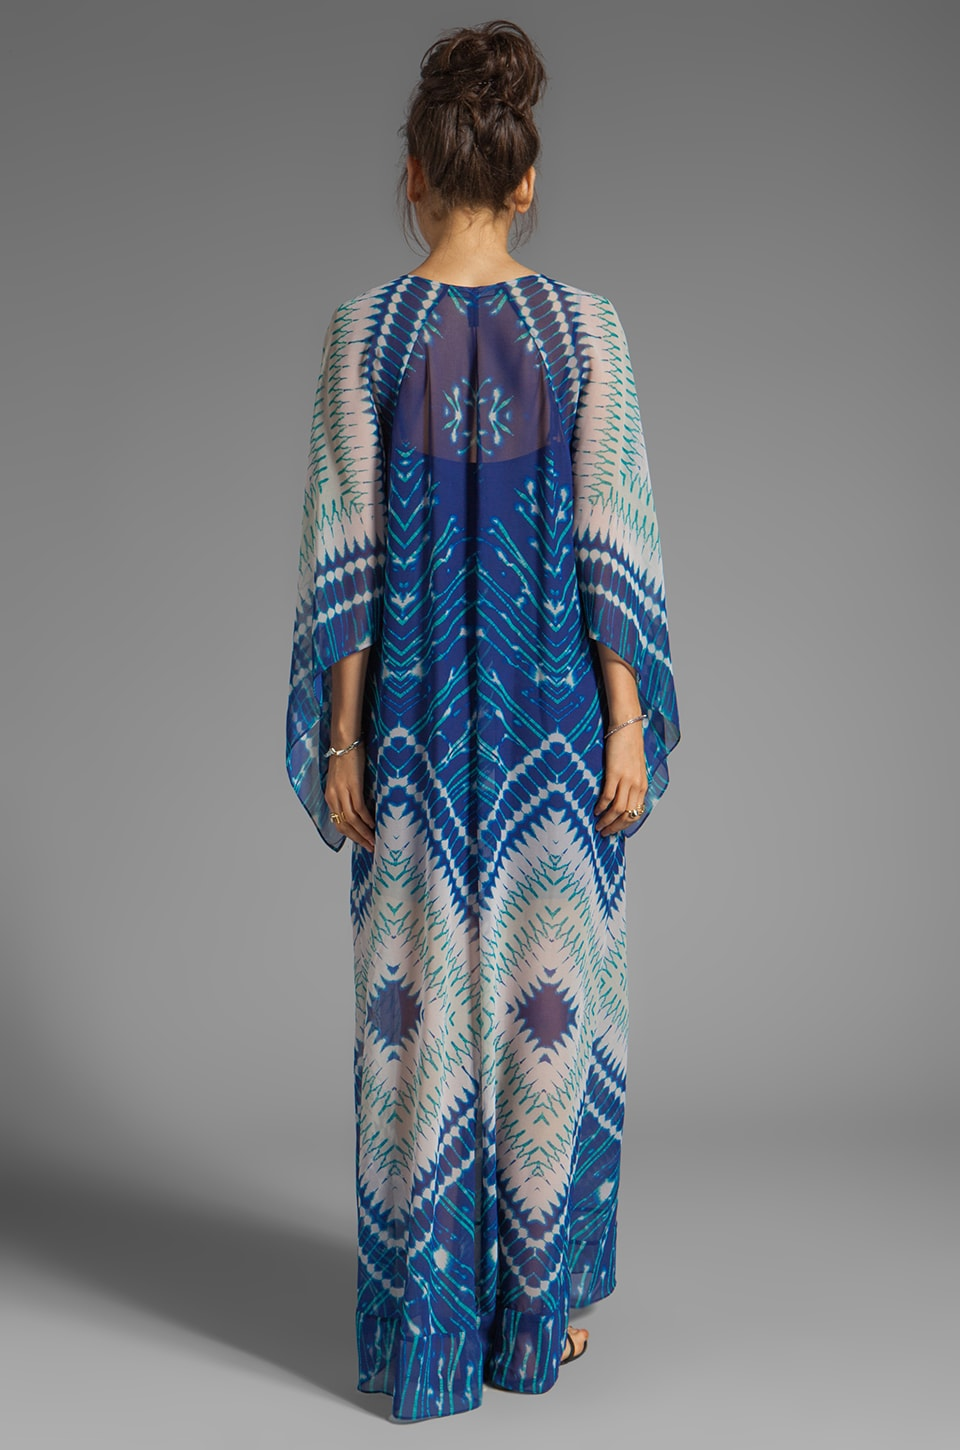 BCBGMAXAZRIA Short Sleeve Printed Maxi Dress in Dark Regal Blue Combo